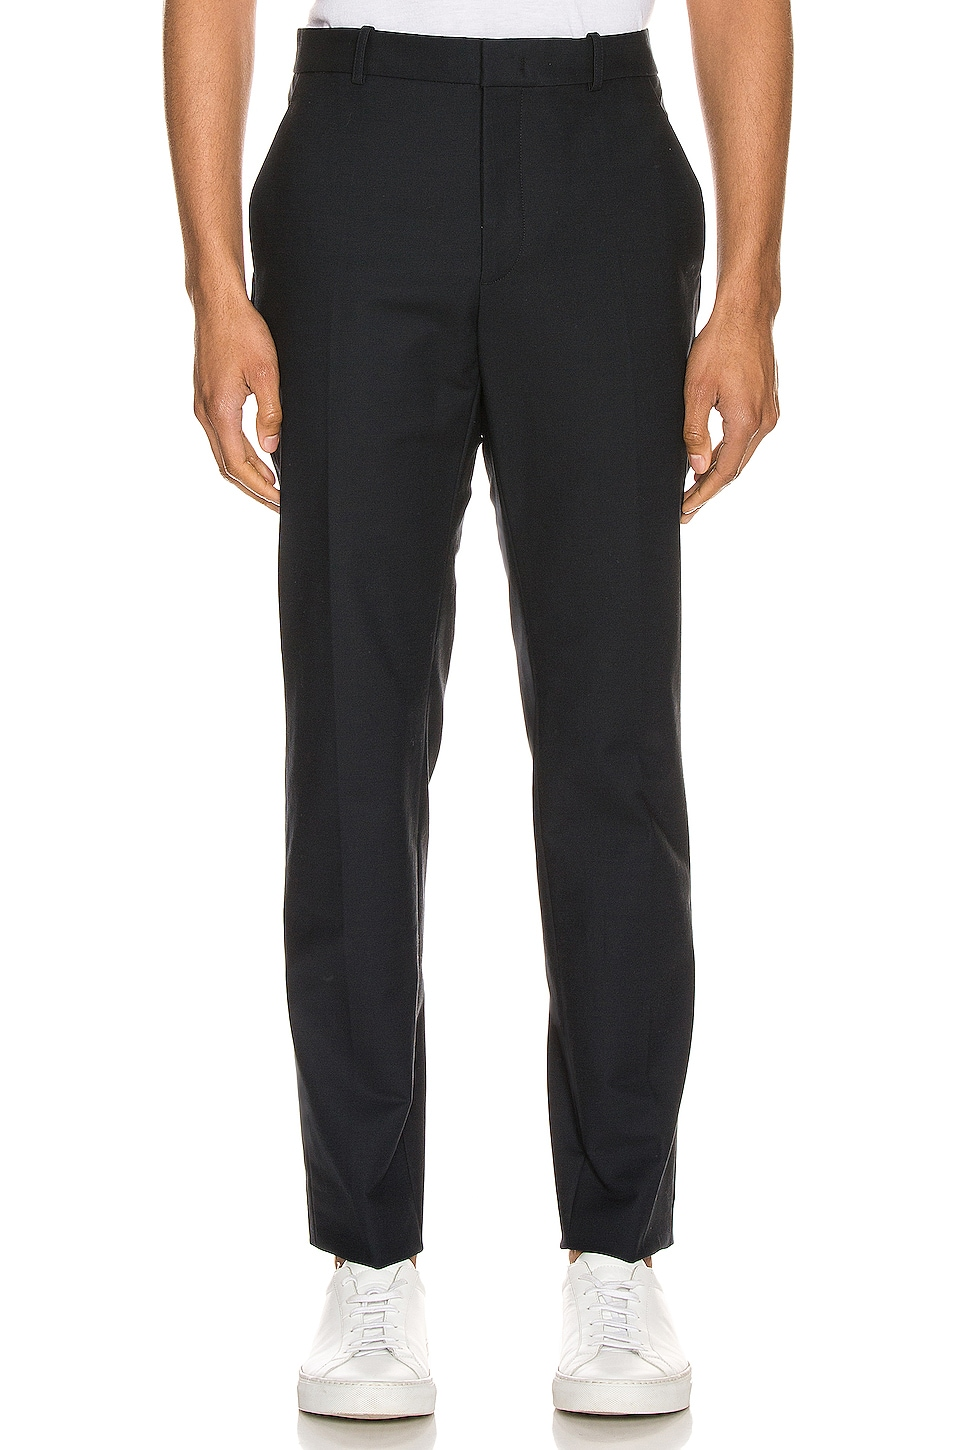 A.P.C. Trousers in Dark Navy